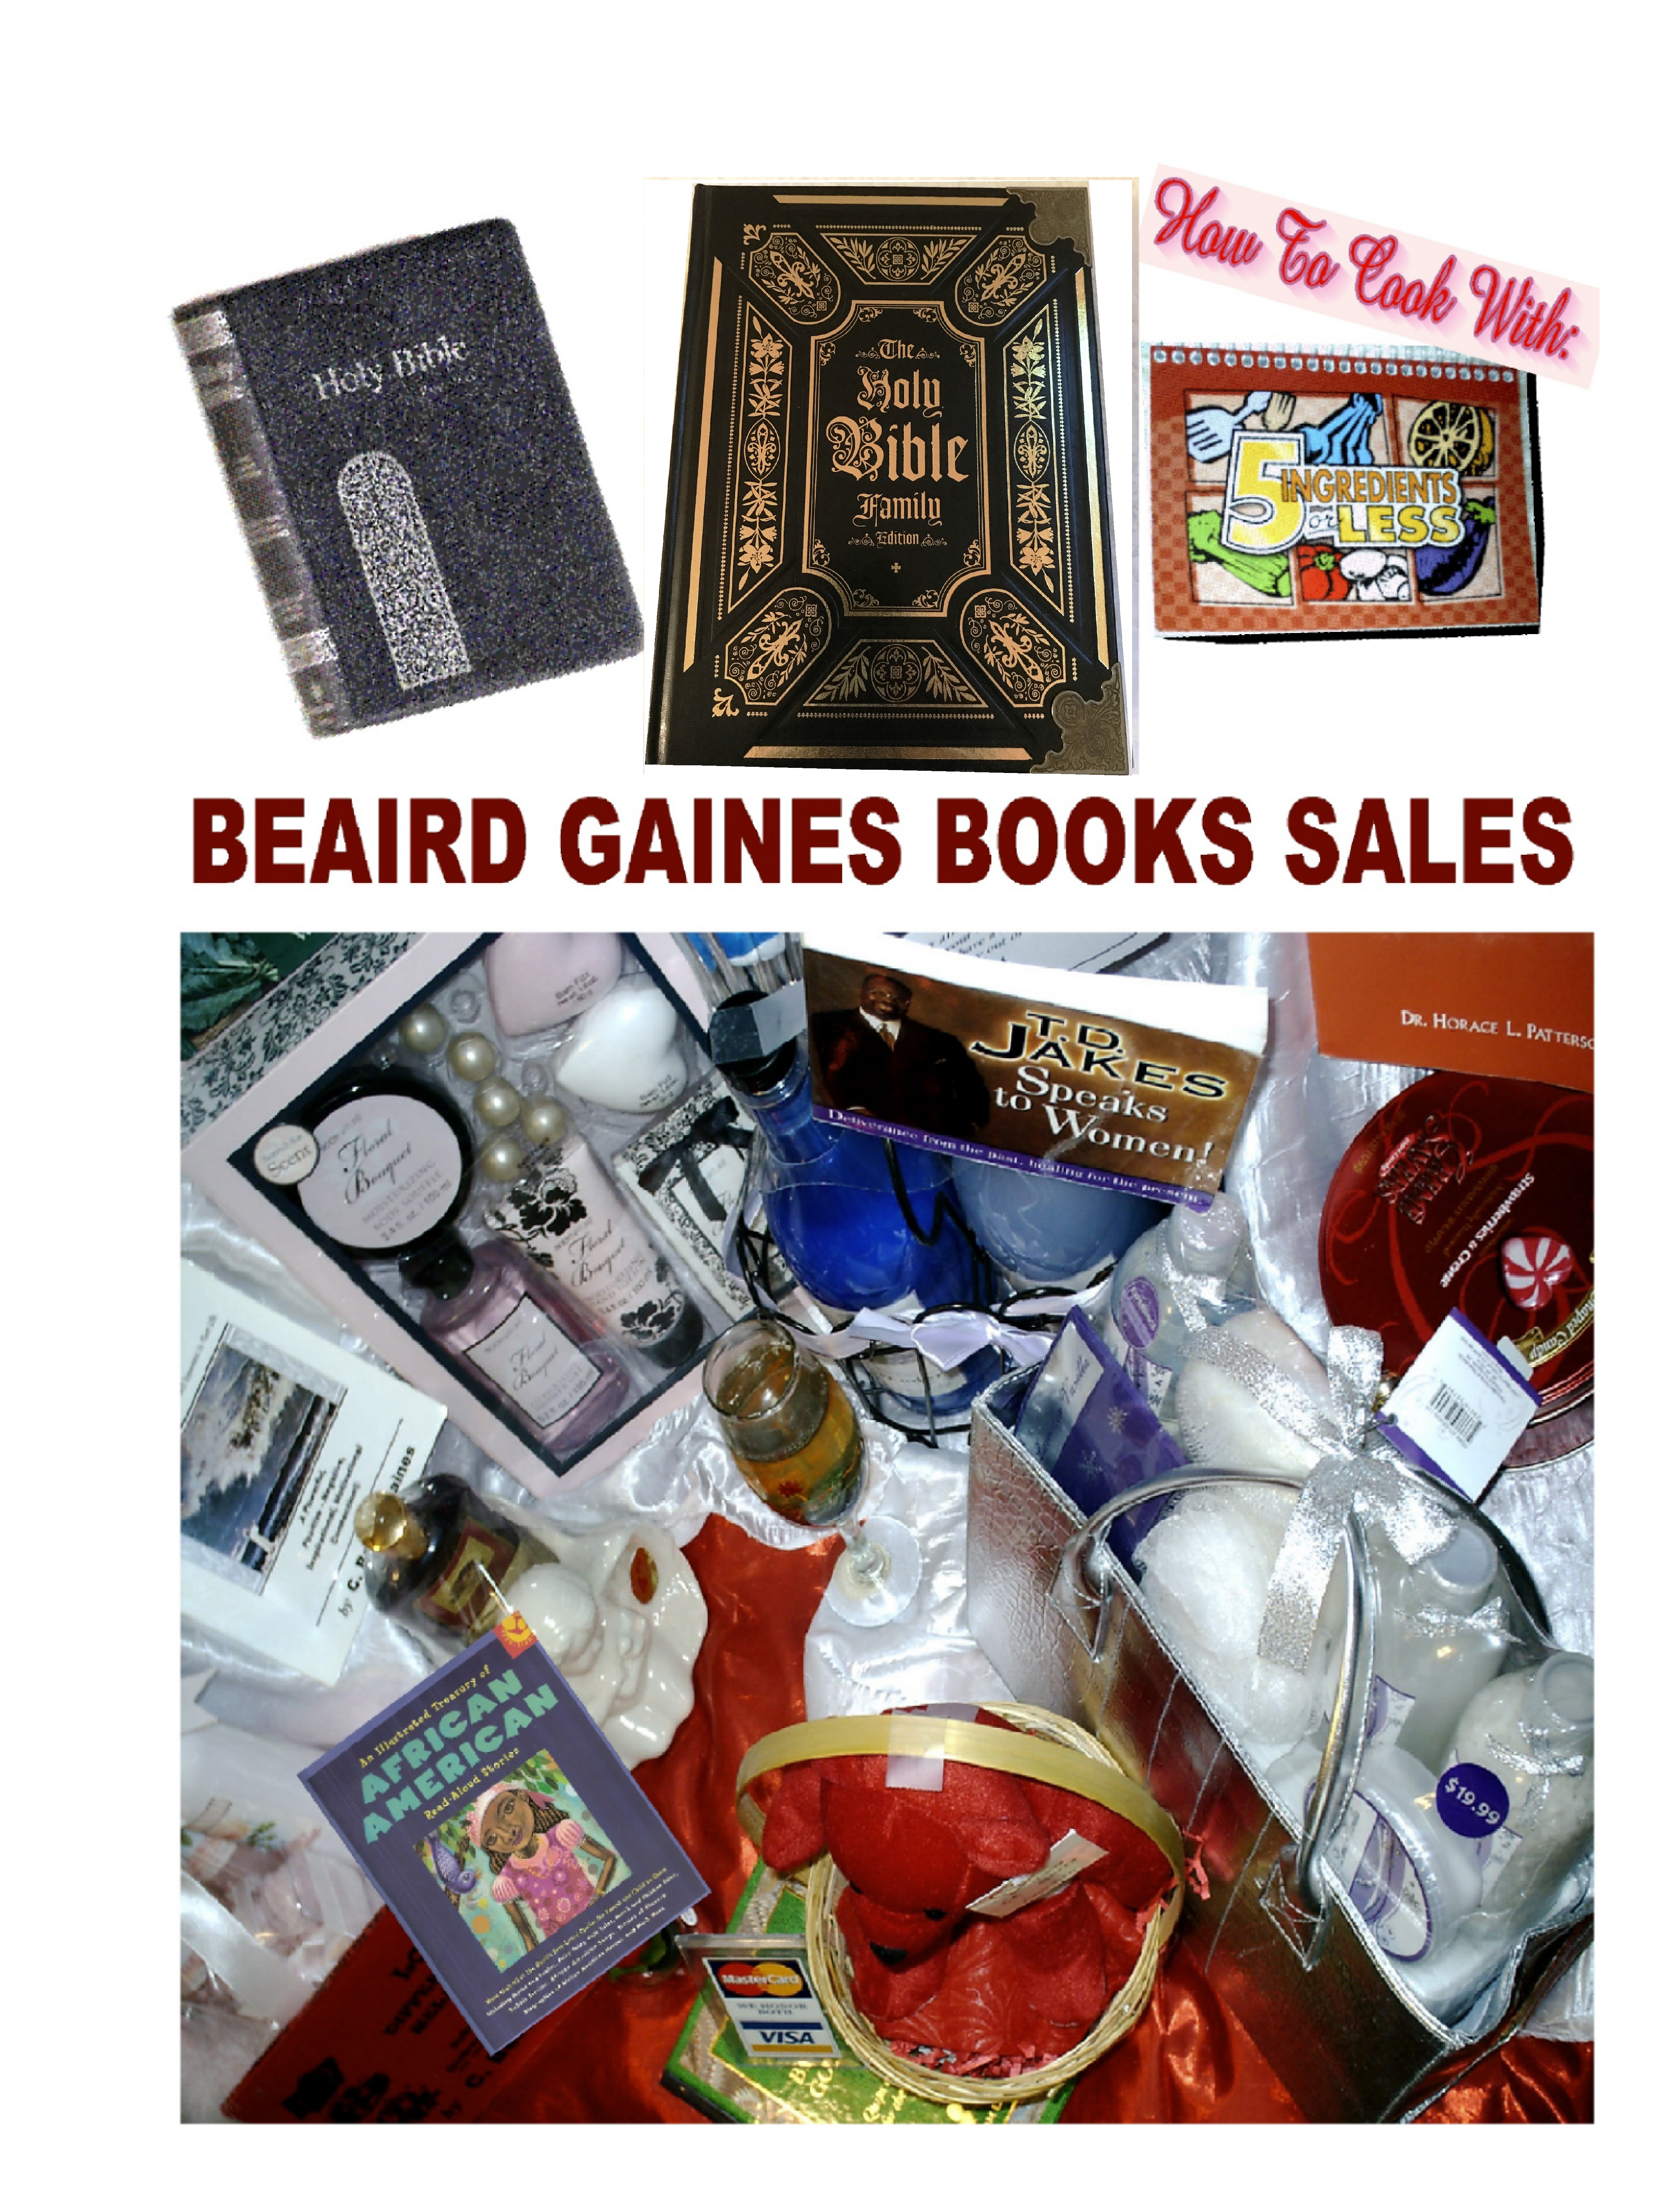 Beaird Gaines Books Sales